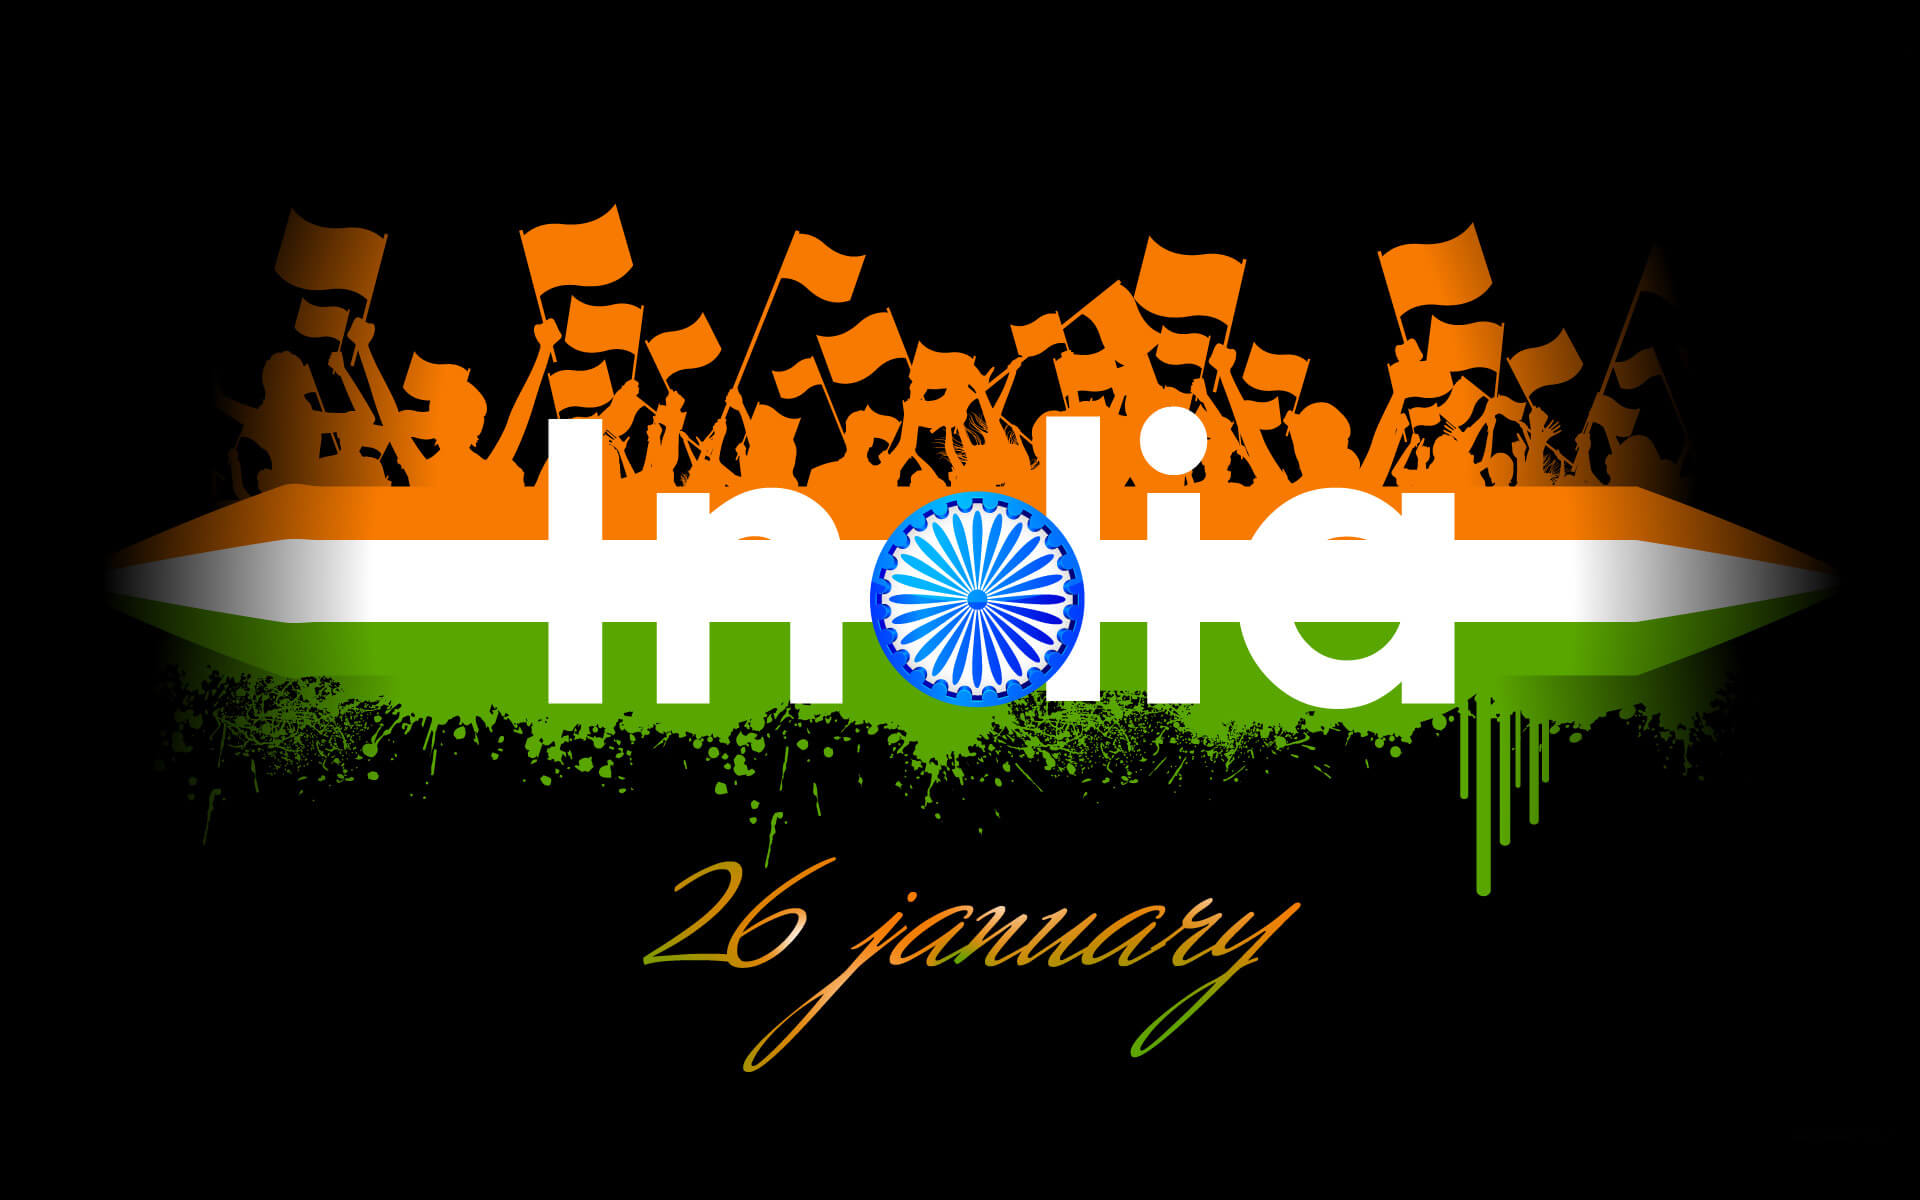 Happy Republic Day Wishes India Freedom Fighters 26 January Hd 1920x1200